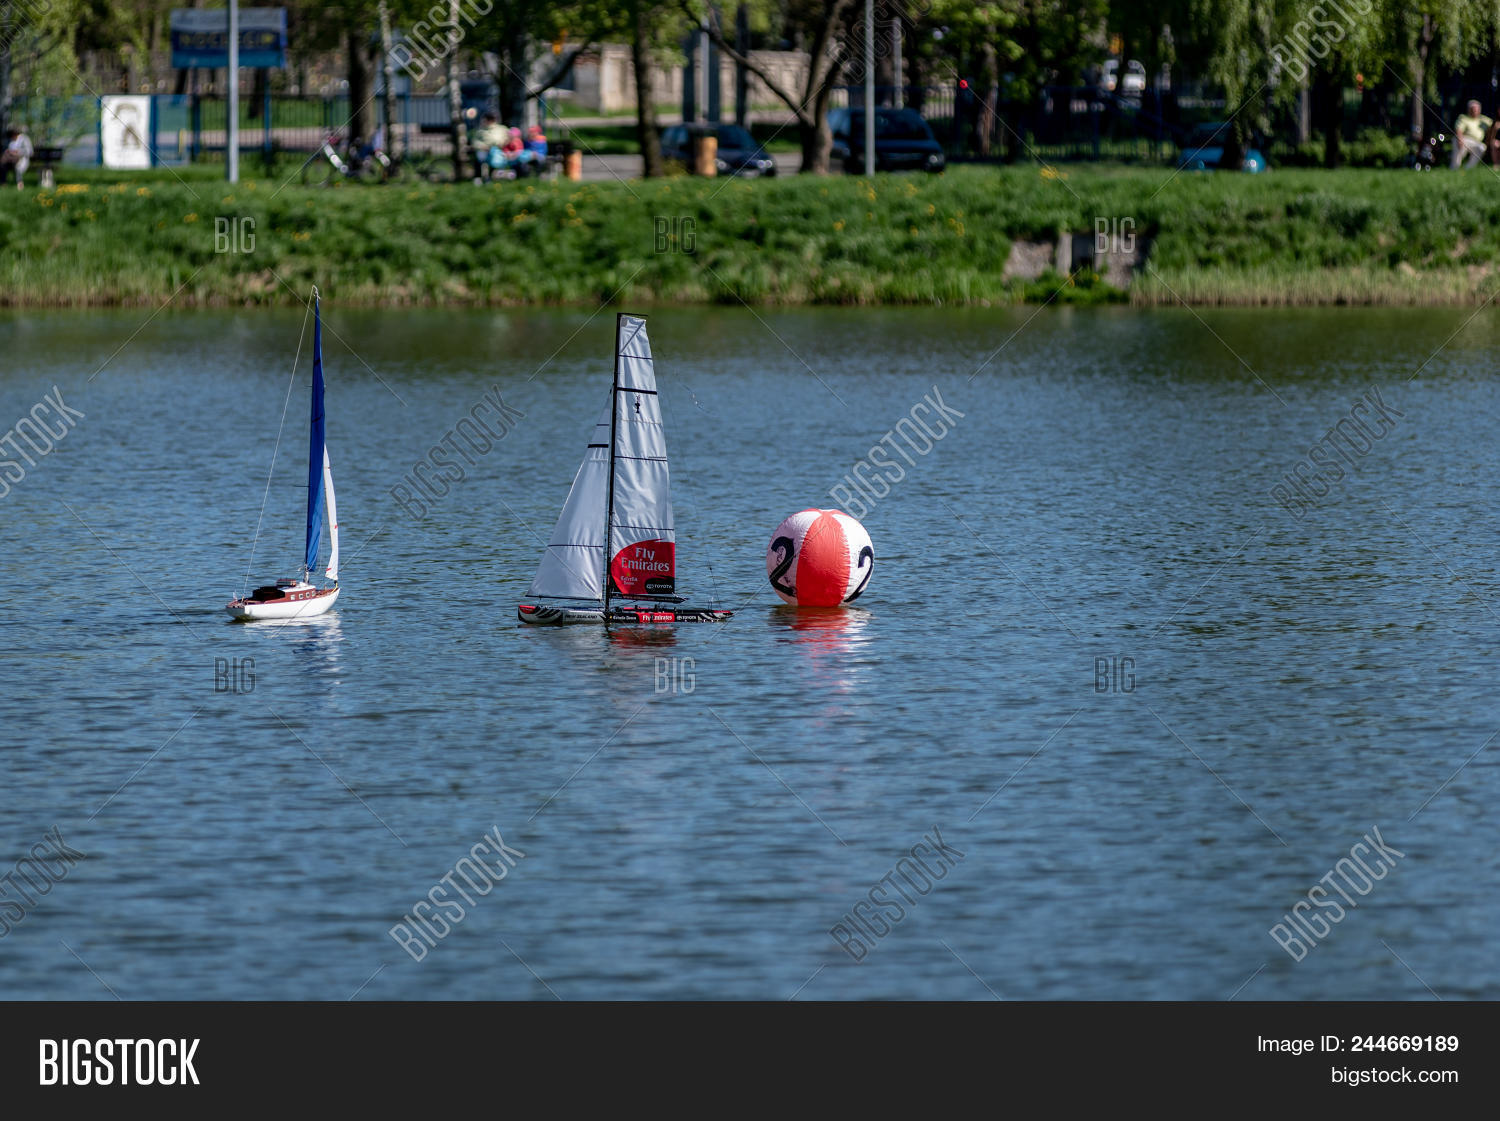 Rc Scale Sailing Model Image & Photo (Free Trial) | Bigstock